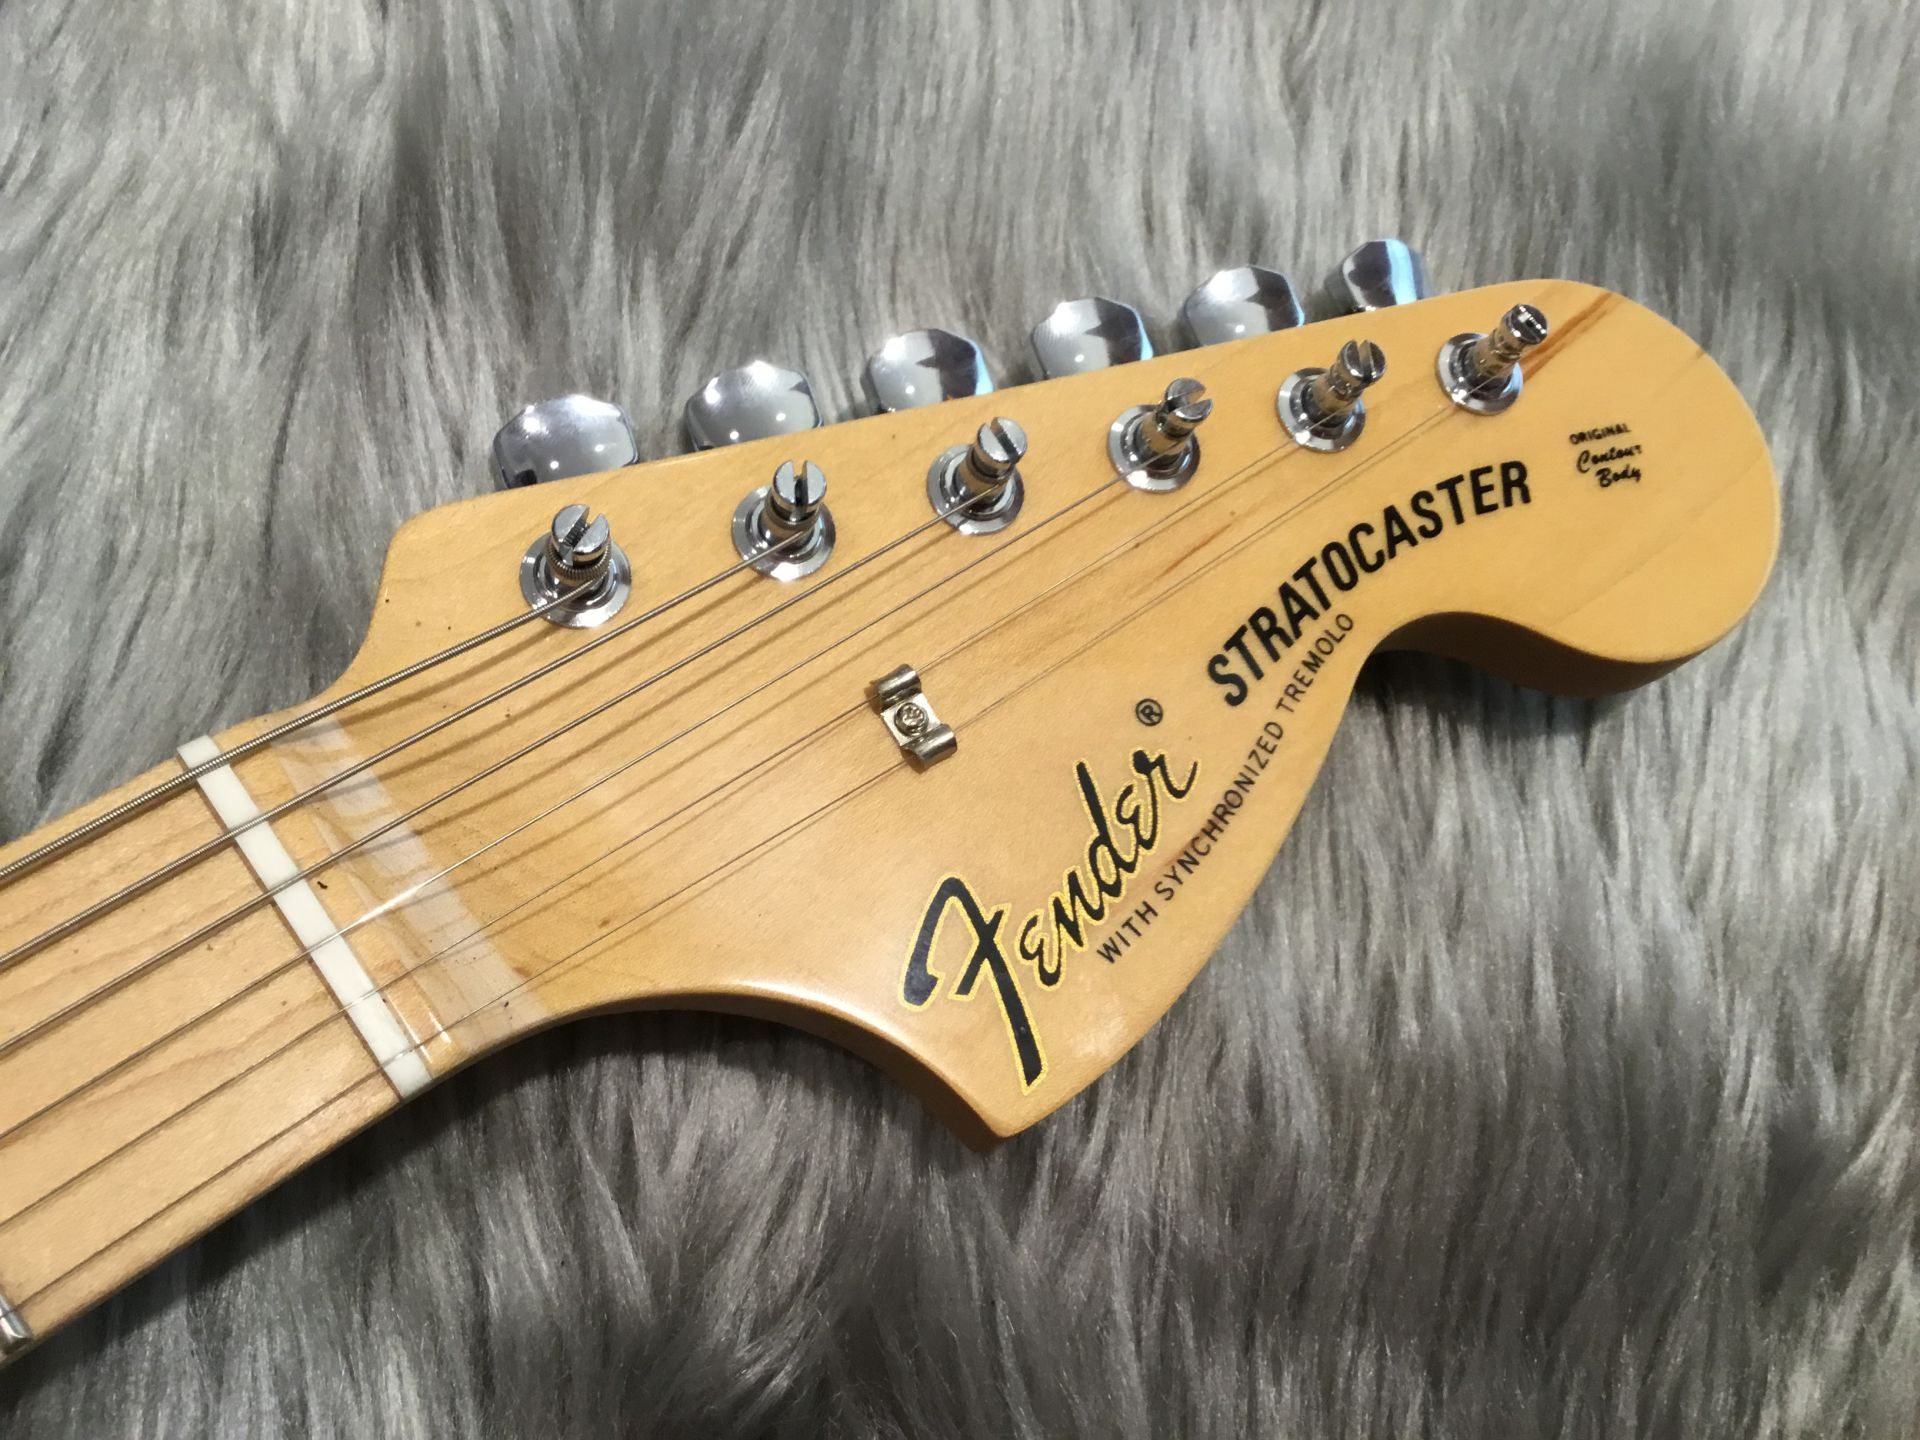 MADE IN JAPAN HYBRID 68 STRATOCASTERのヘッド画像